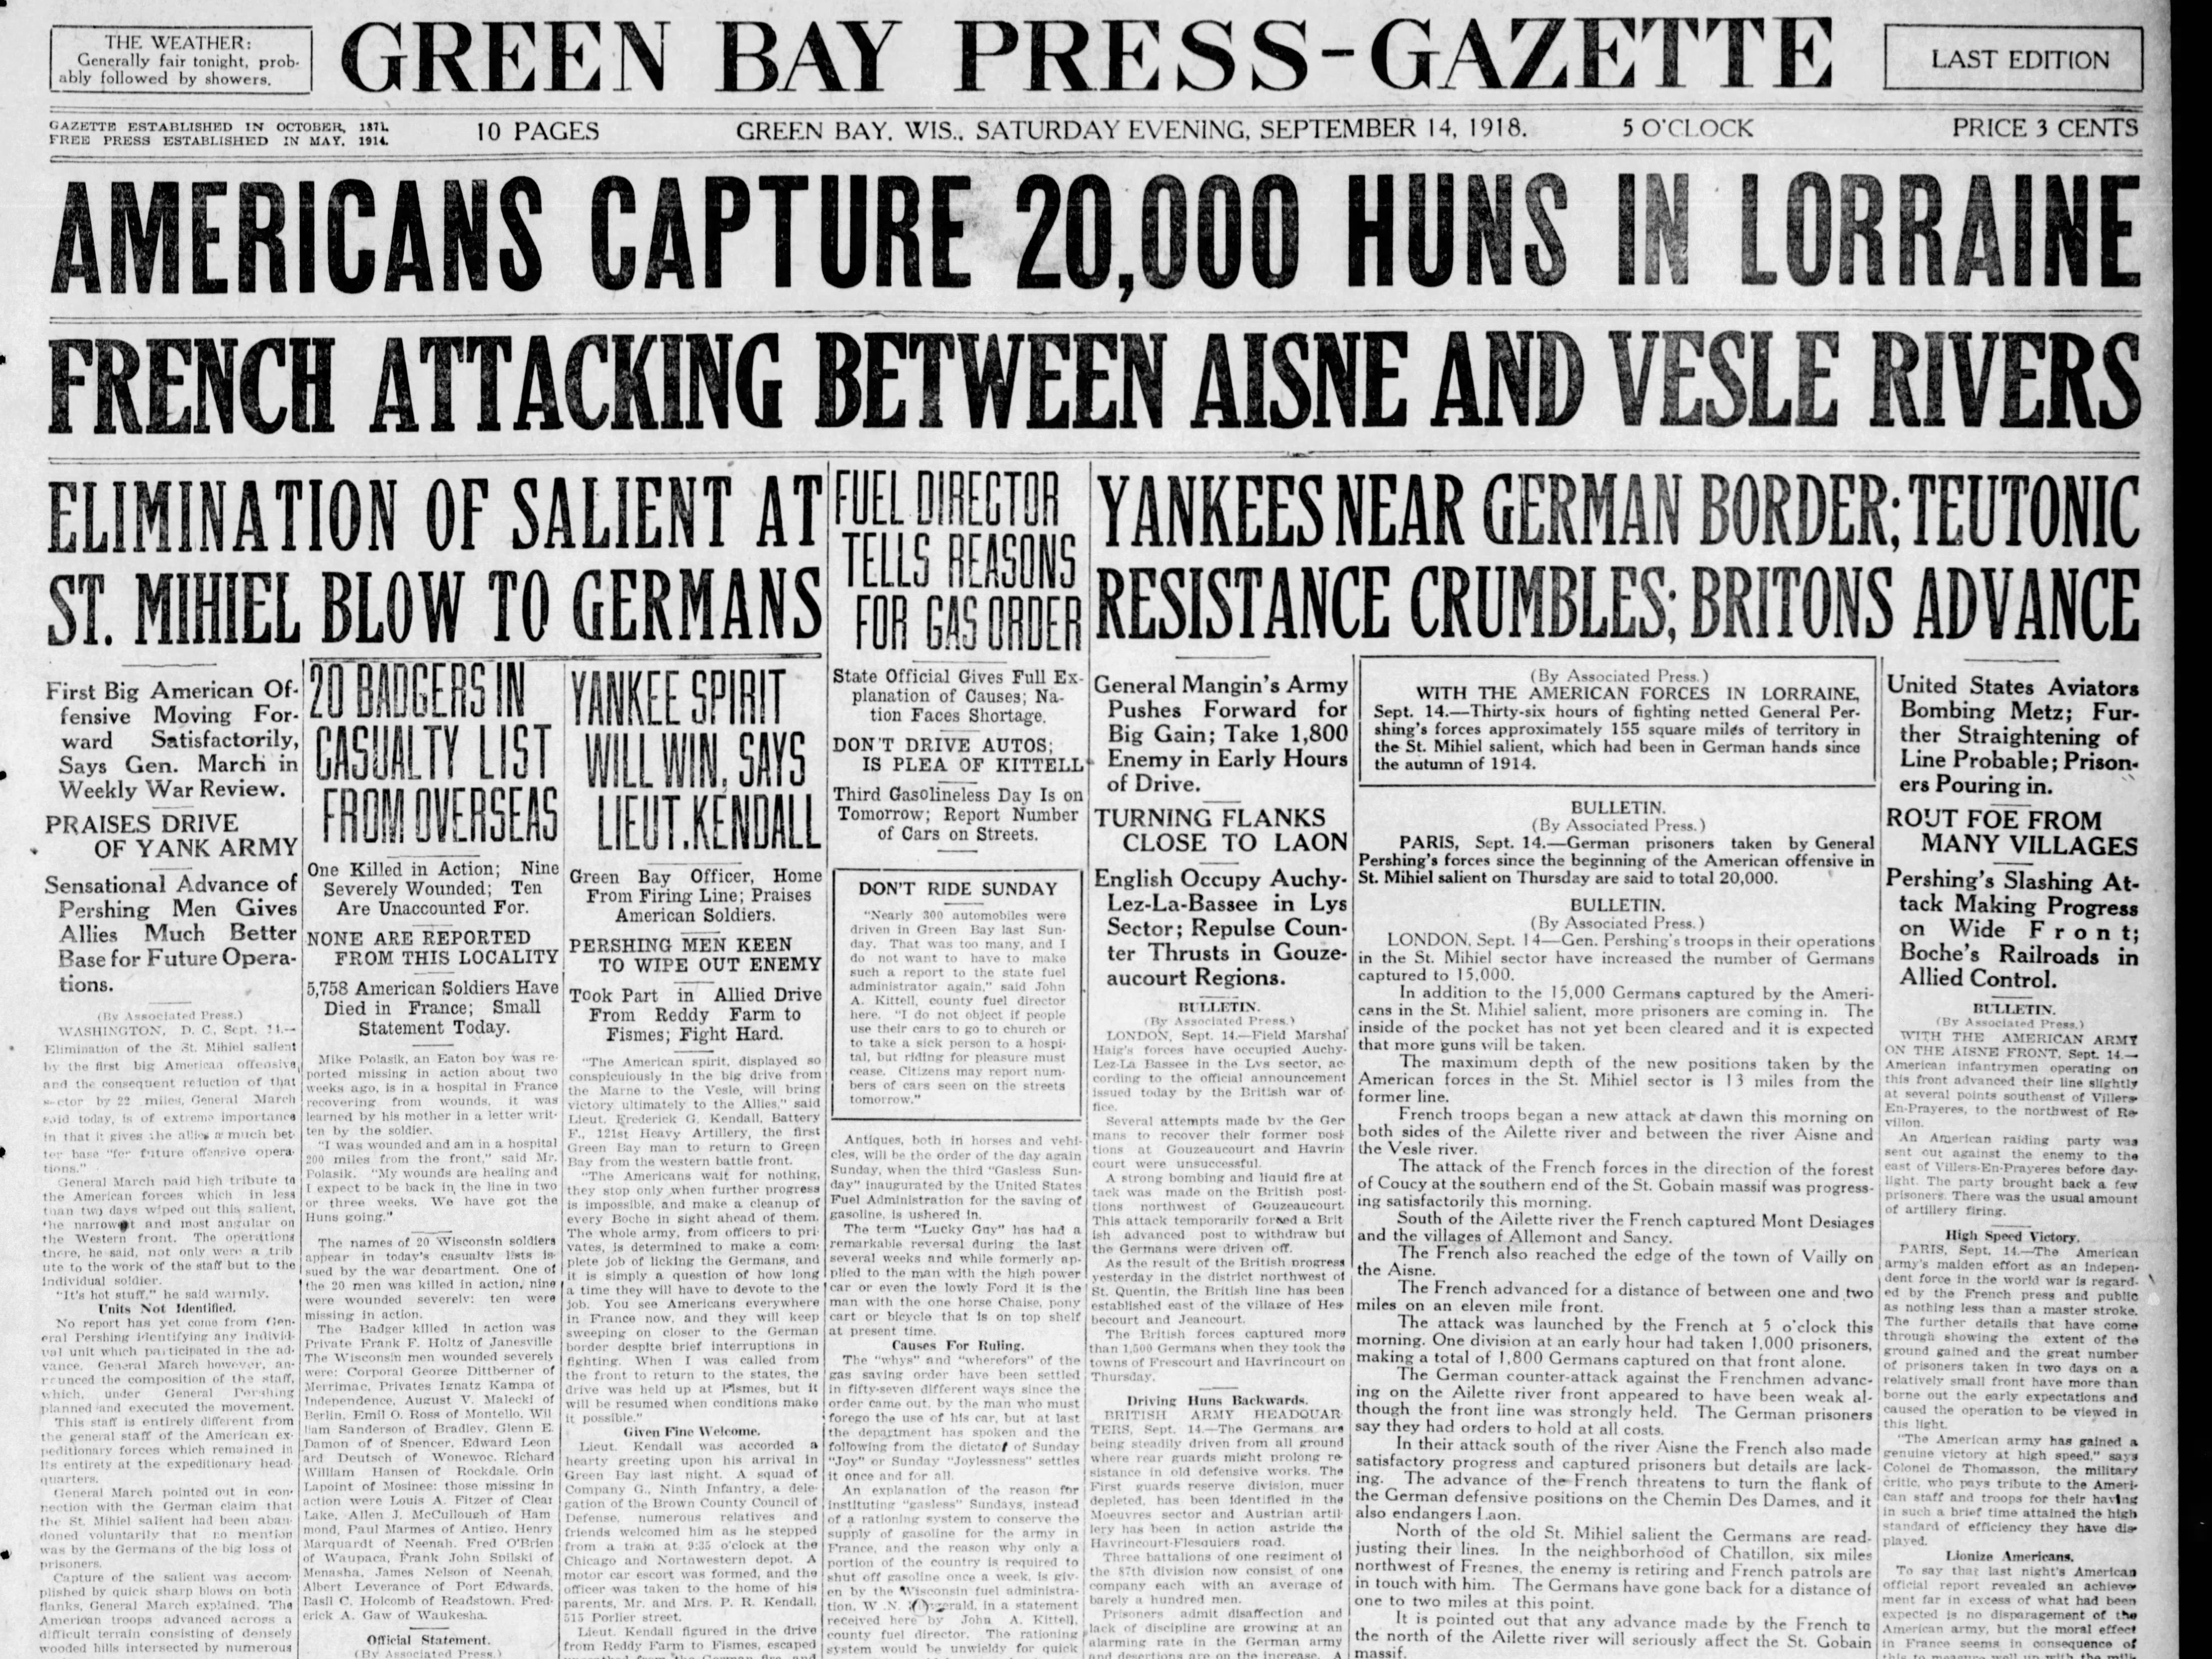 Today in History: Sept. 14, 1918